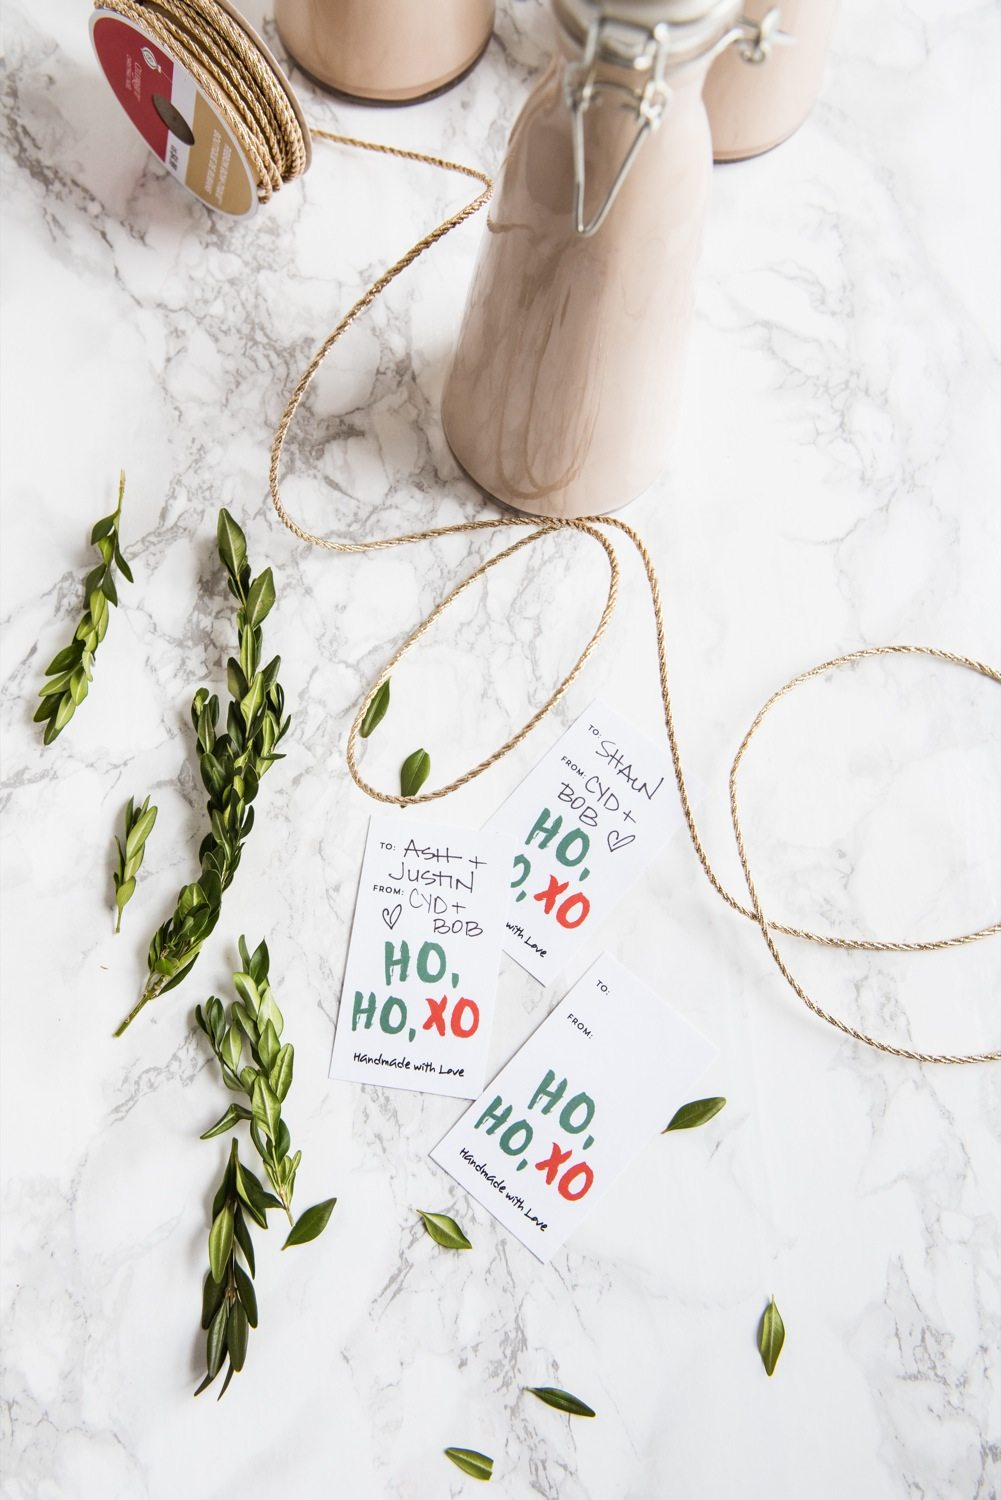 Homemade Christmas Gifts | Homemade Irish Cream Recipe with Free Printables from @cydconverse and @erikafirm